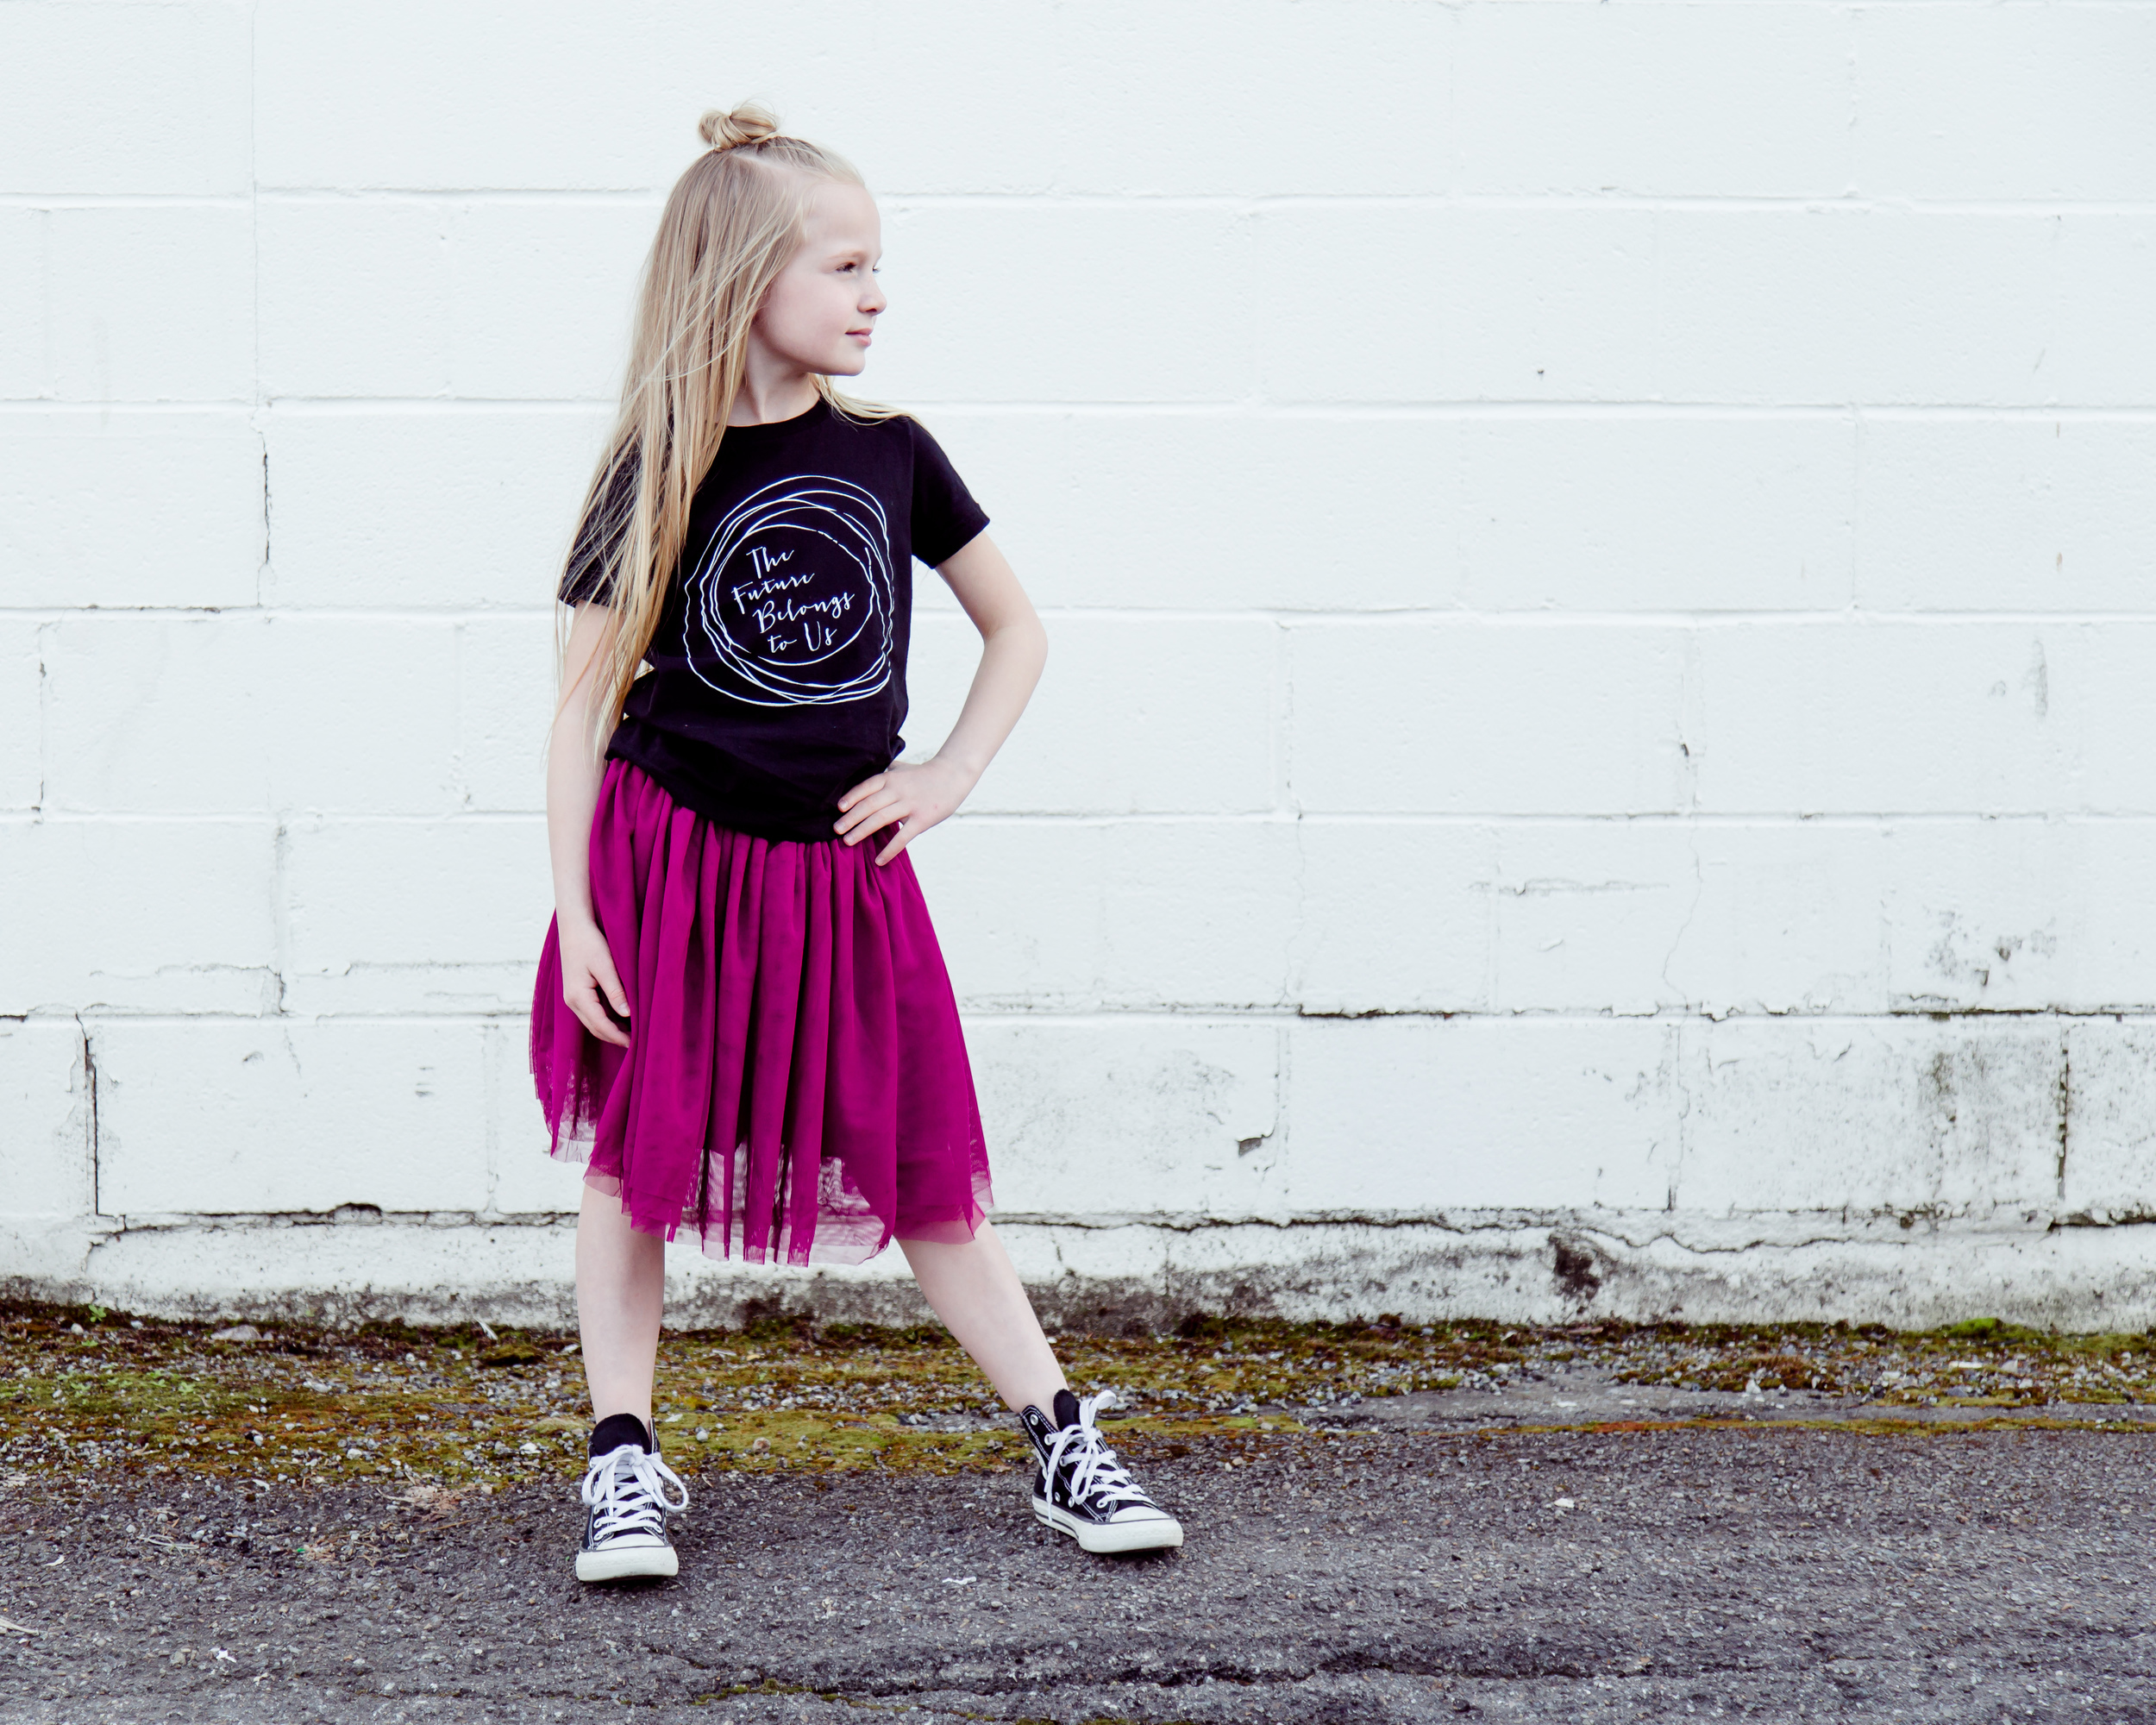 tee: badger and rue // skirt: little edge threads // shoes: converse